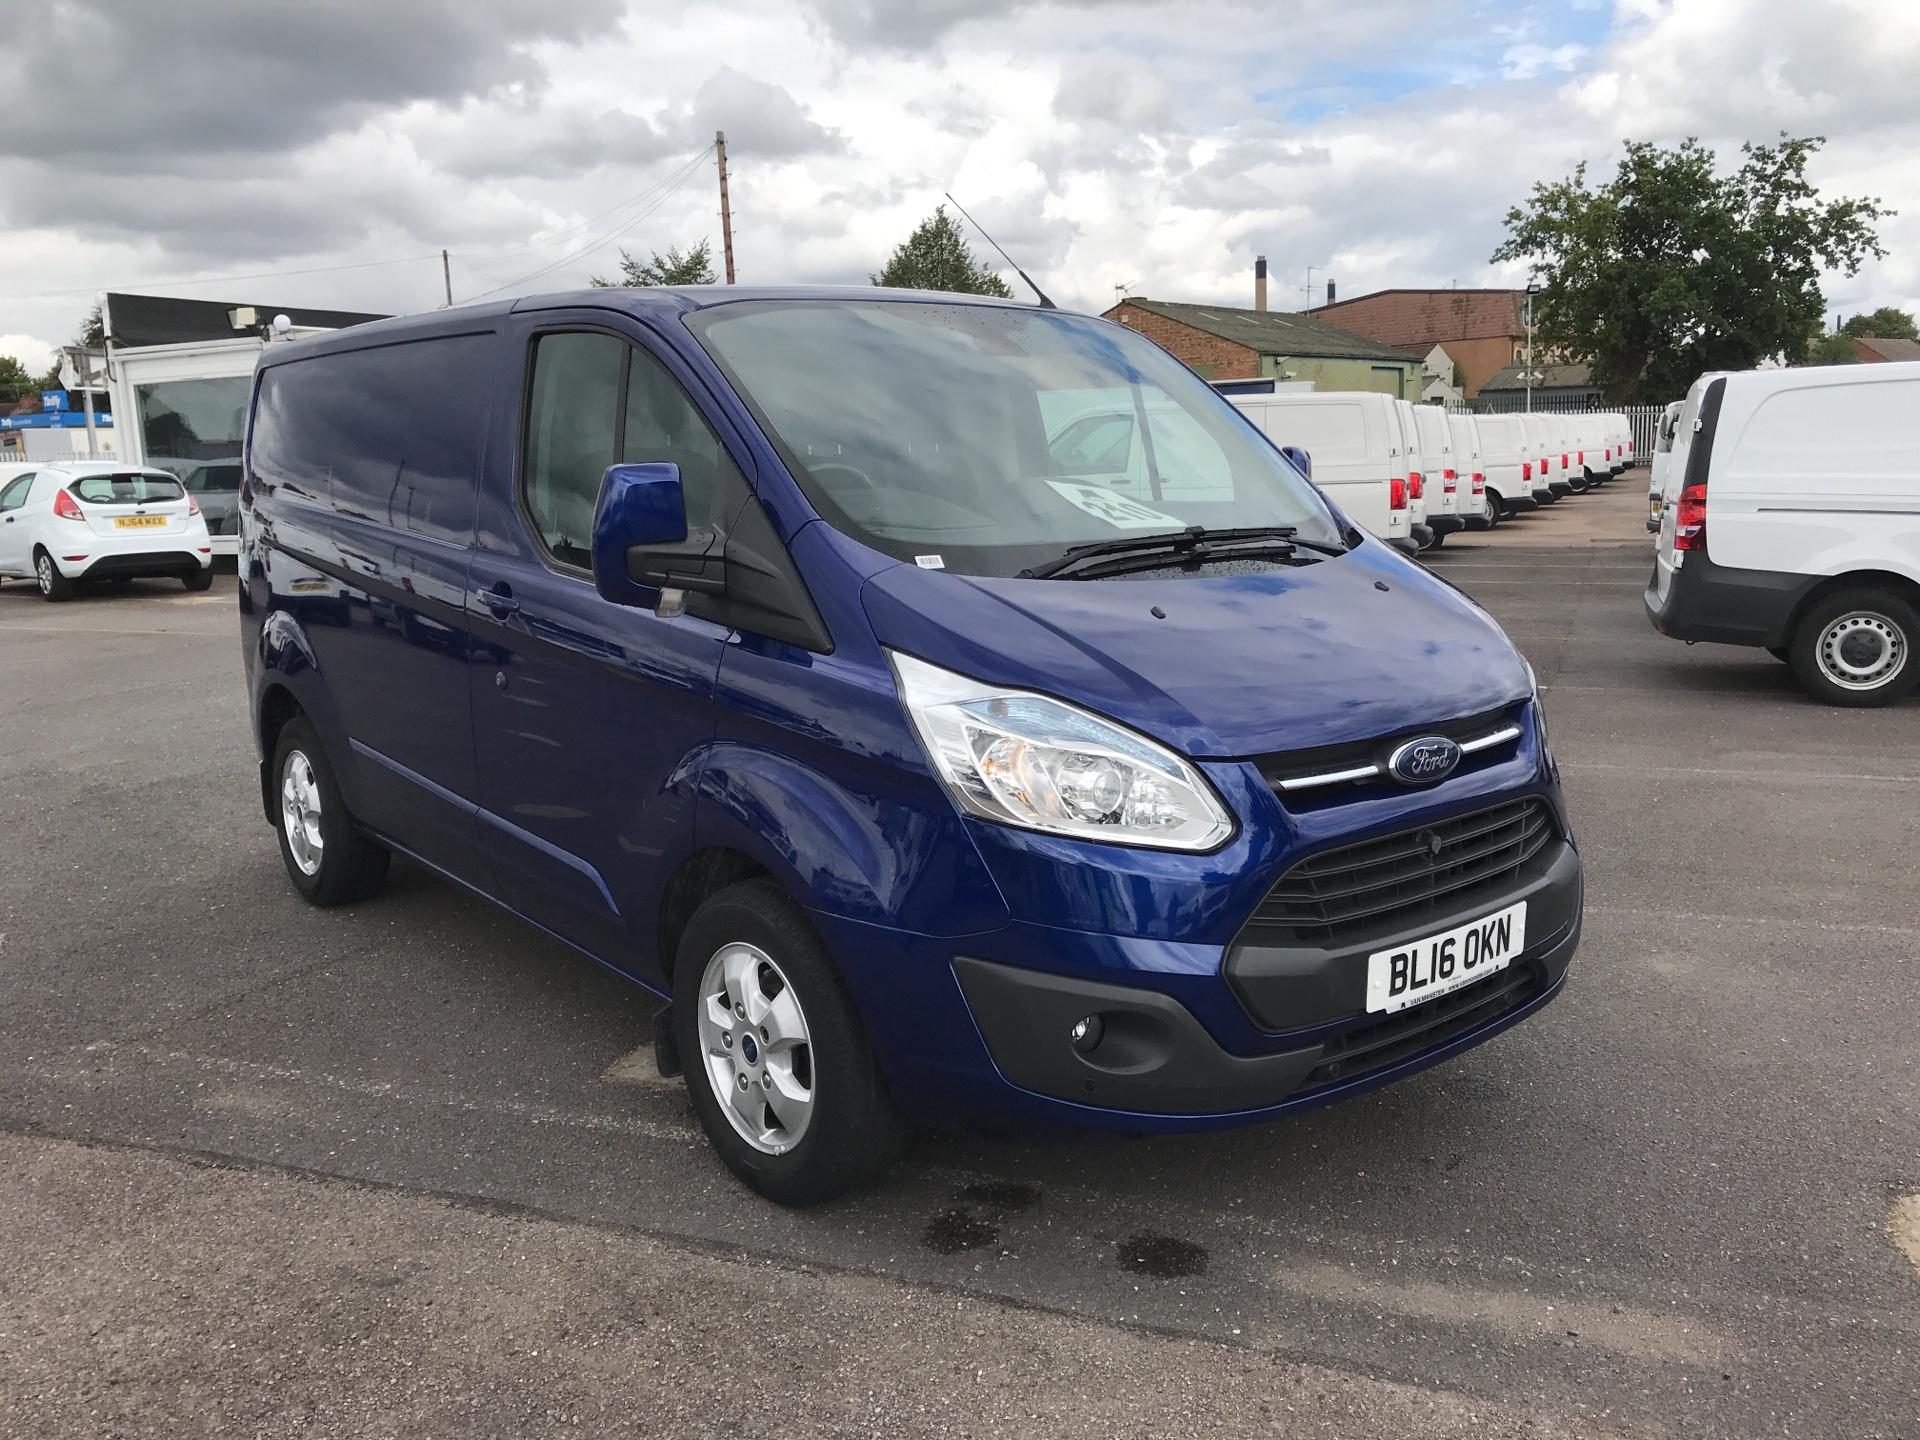 2016 Ford Transit Custom 270 L1 DIESEL FWD 2.2  TDCI 125PS LOW ROOF LIMITED VAN EURO 5 (BL16OKN)